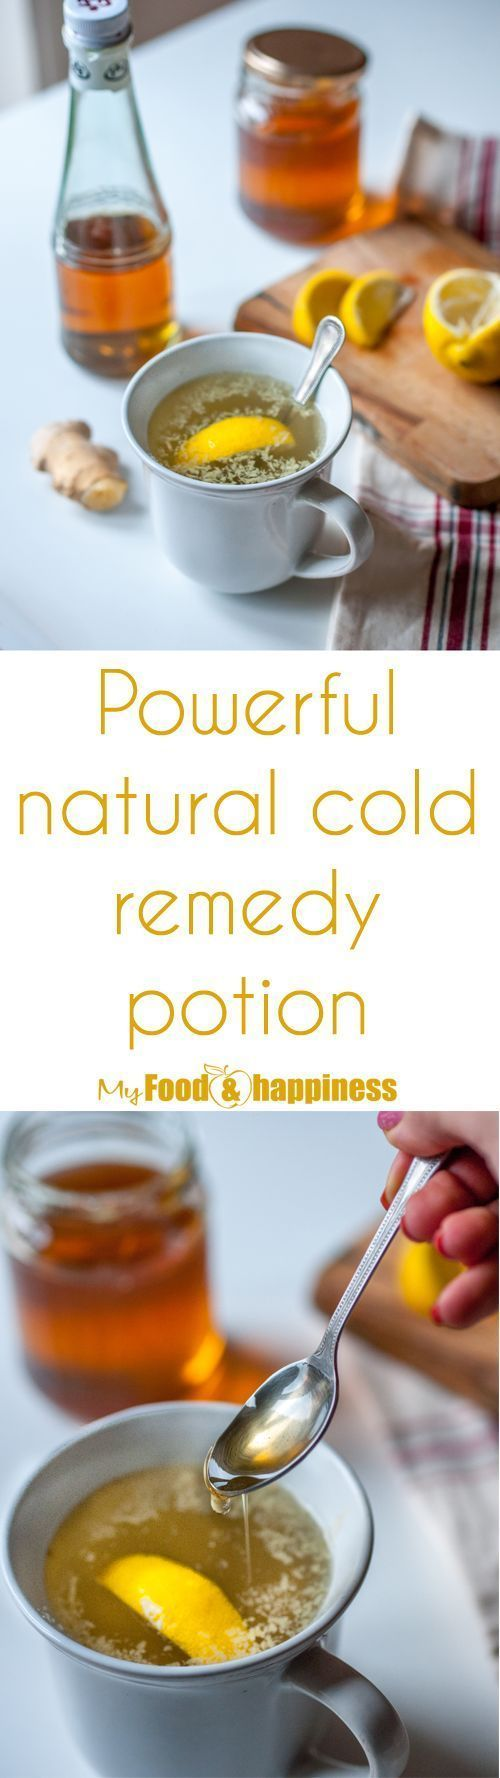 Powerful natural cold remedy potion to relieve common cold symptoms such as runn…Four Sigmatic